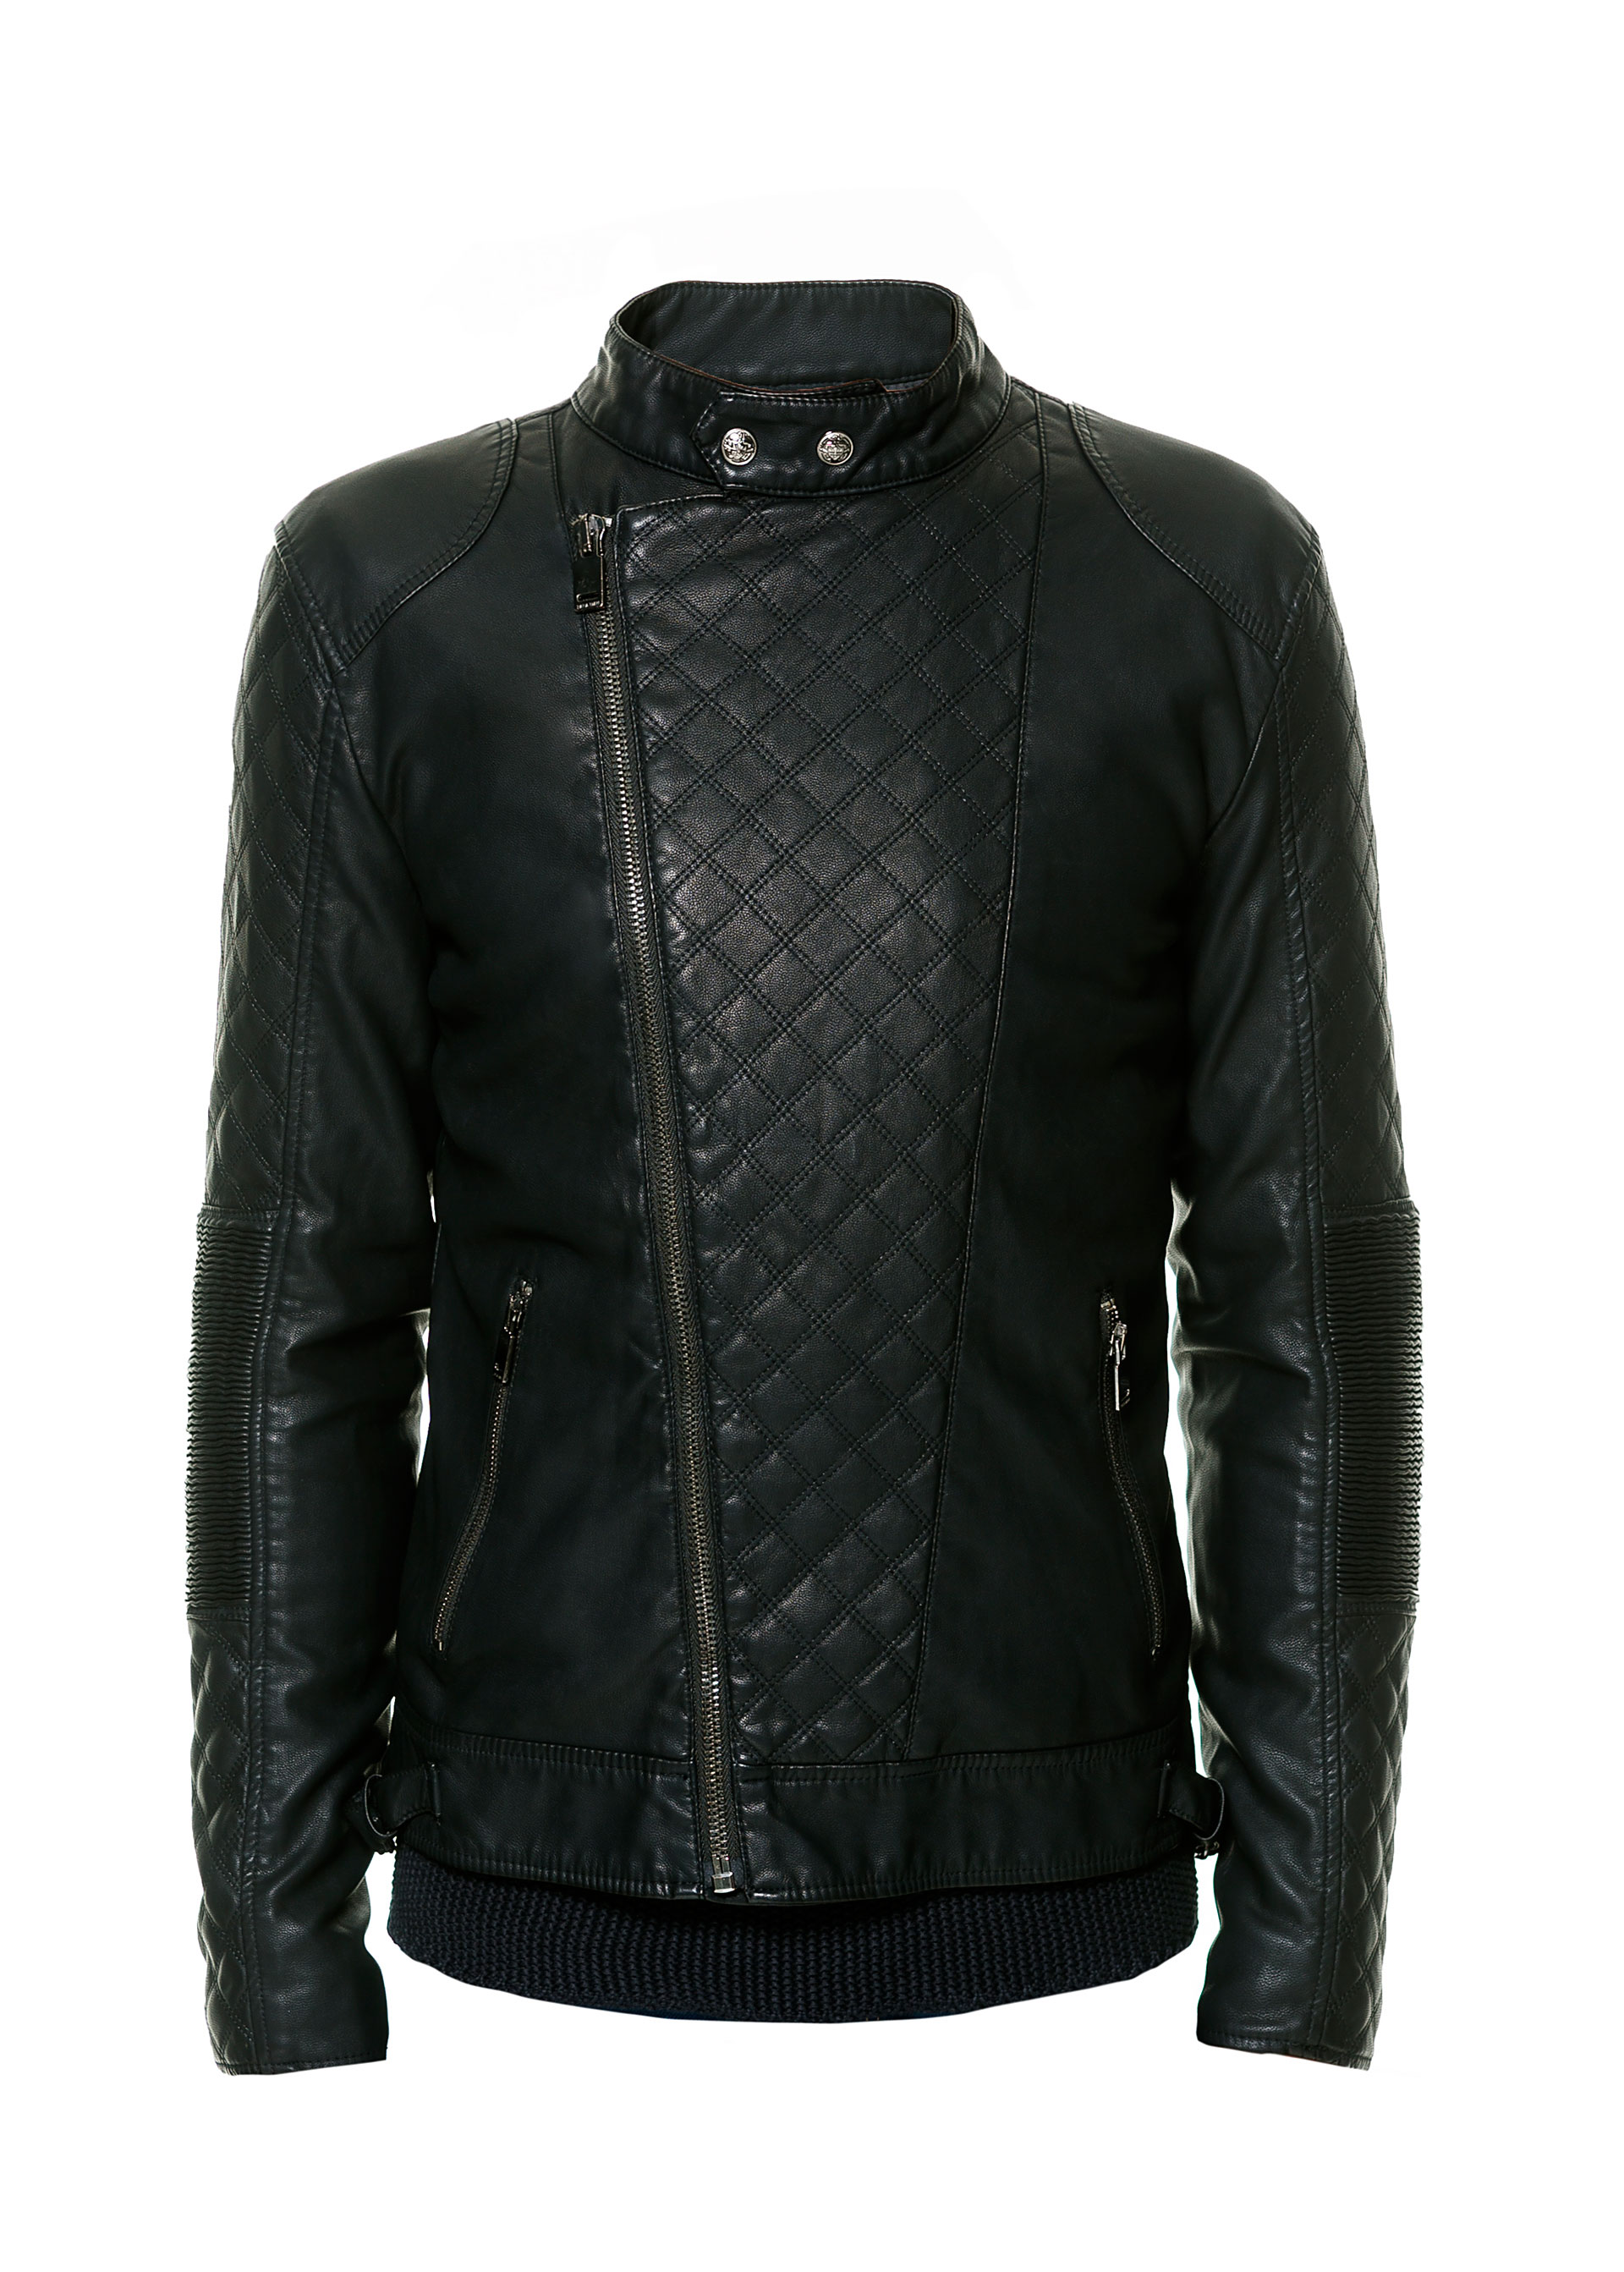 Zara Biker Jacket With Elbow Patches In Black For Men | Lyst